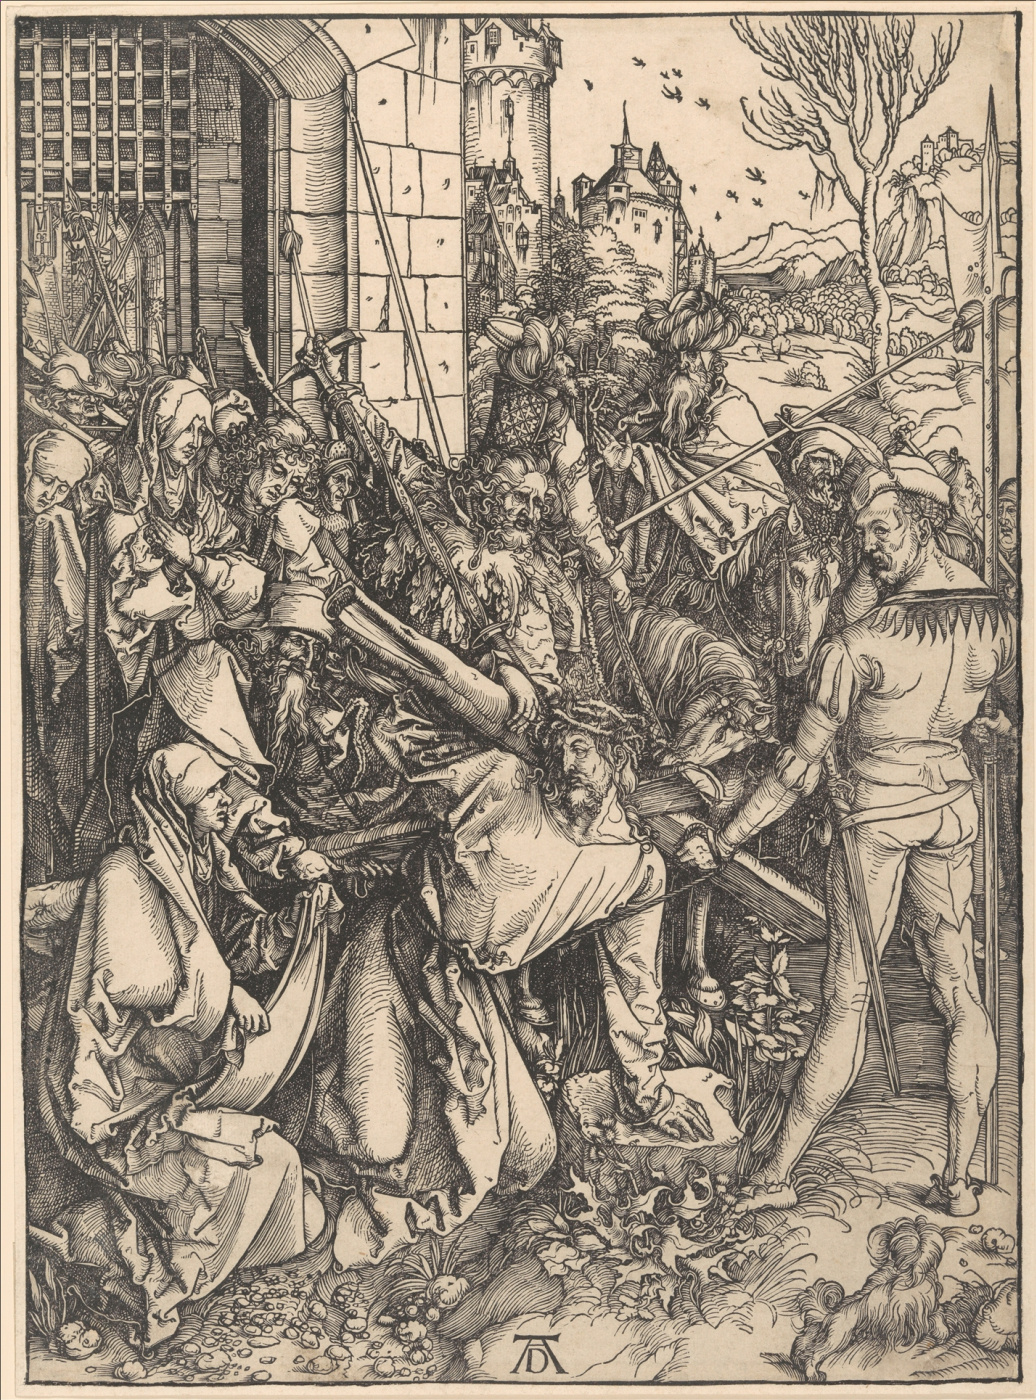 Albrecht Dürer. Christ carrying the cross